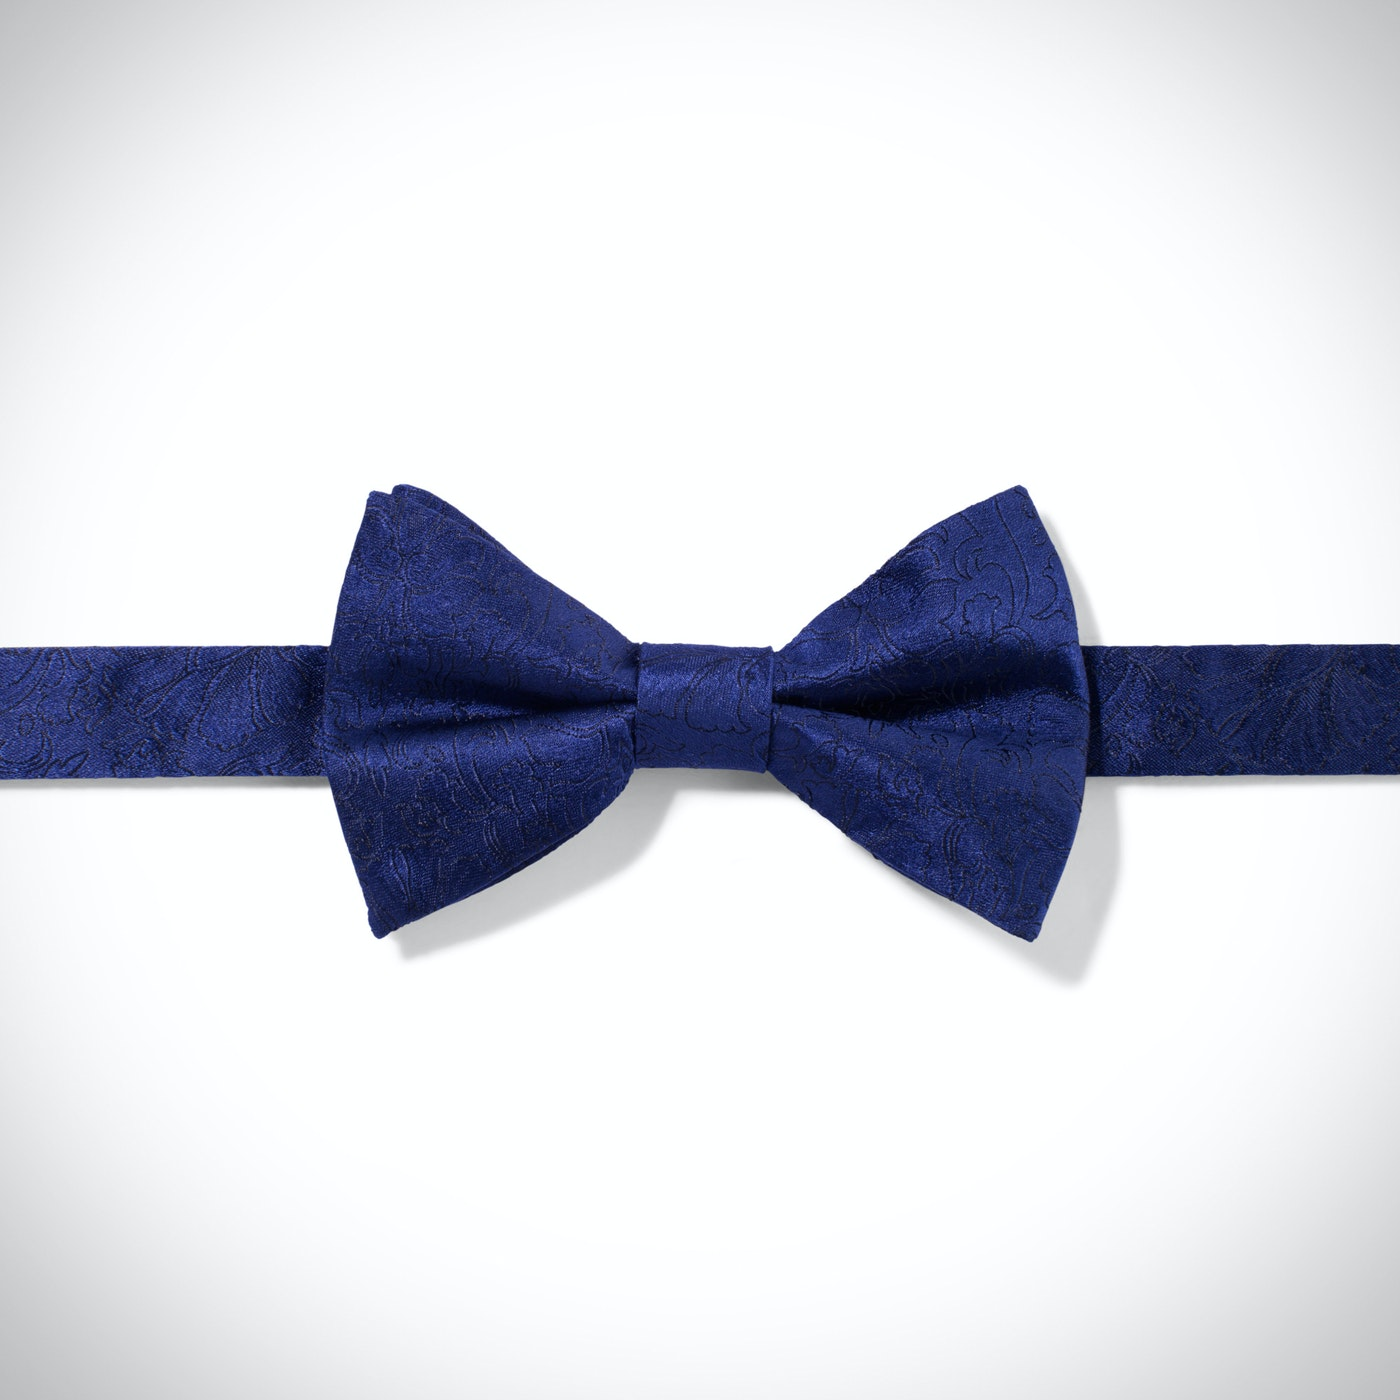 Blue Etched Floral Bow Tie